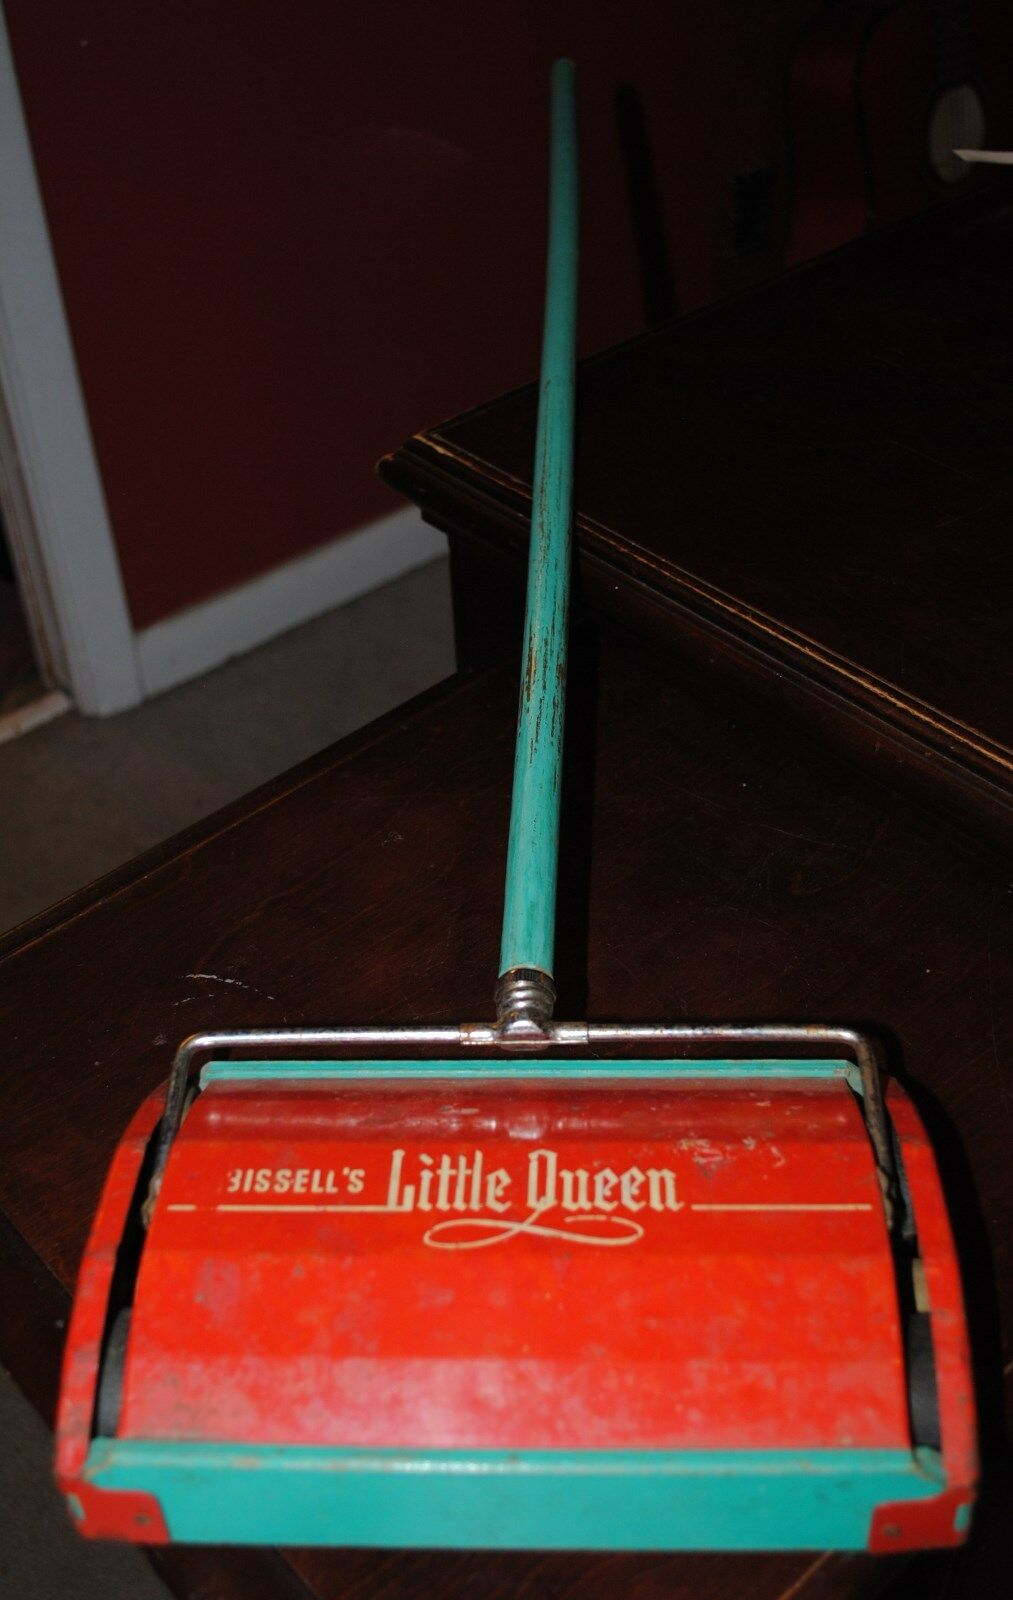 BISSELL'S LITTLE QUEEN TOY PULL PUSH SWEEPER VERY CUTE & COOL OLD PLAY TOY